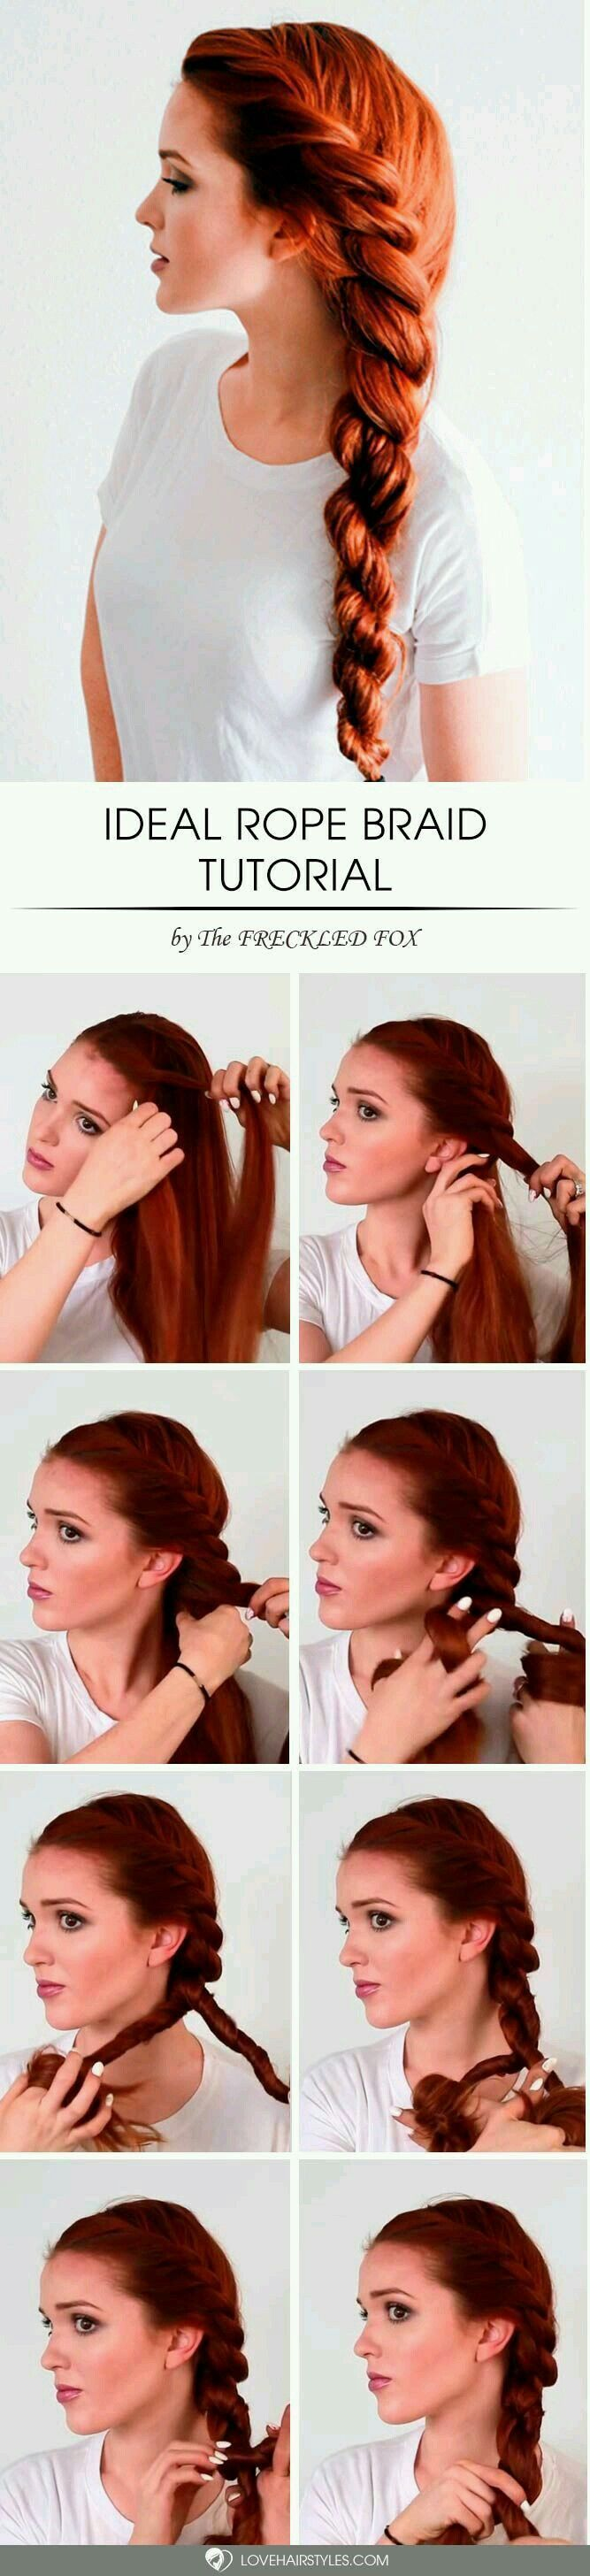 15 Easy to Do Everyday Hairstyle Ideas for Short, Medium & Long Hairs        sei… – Shellice in Wonderland